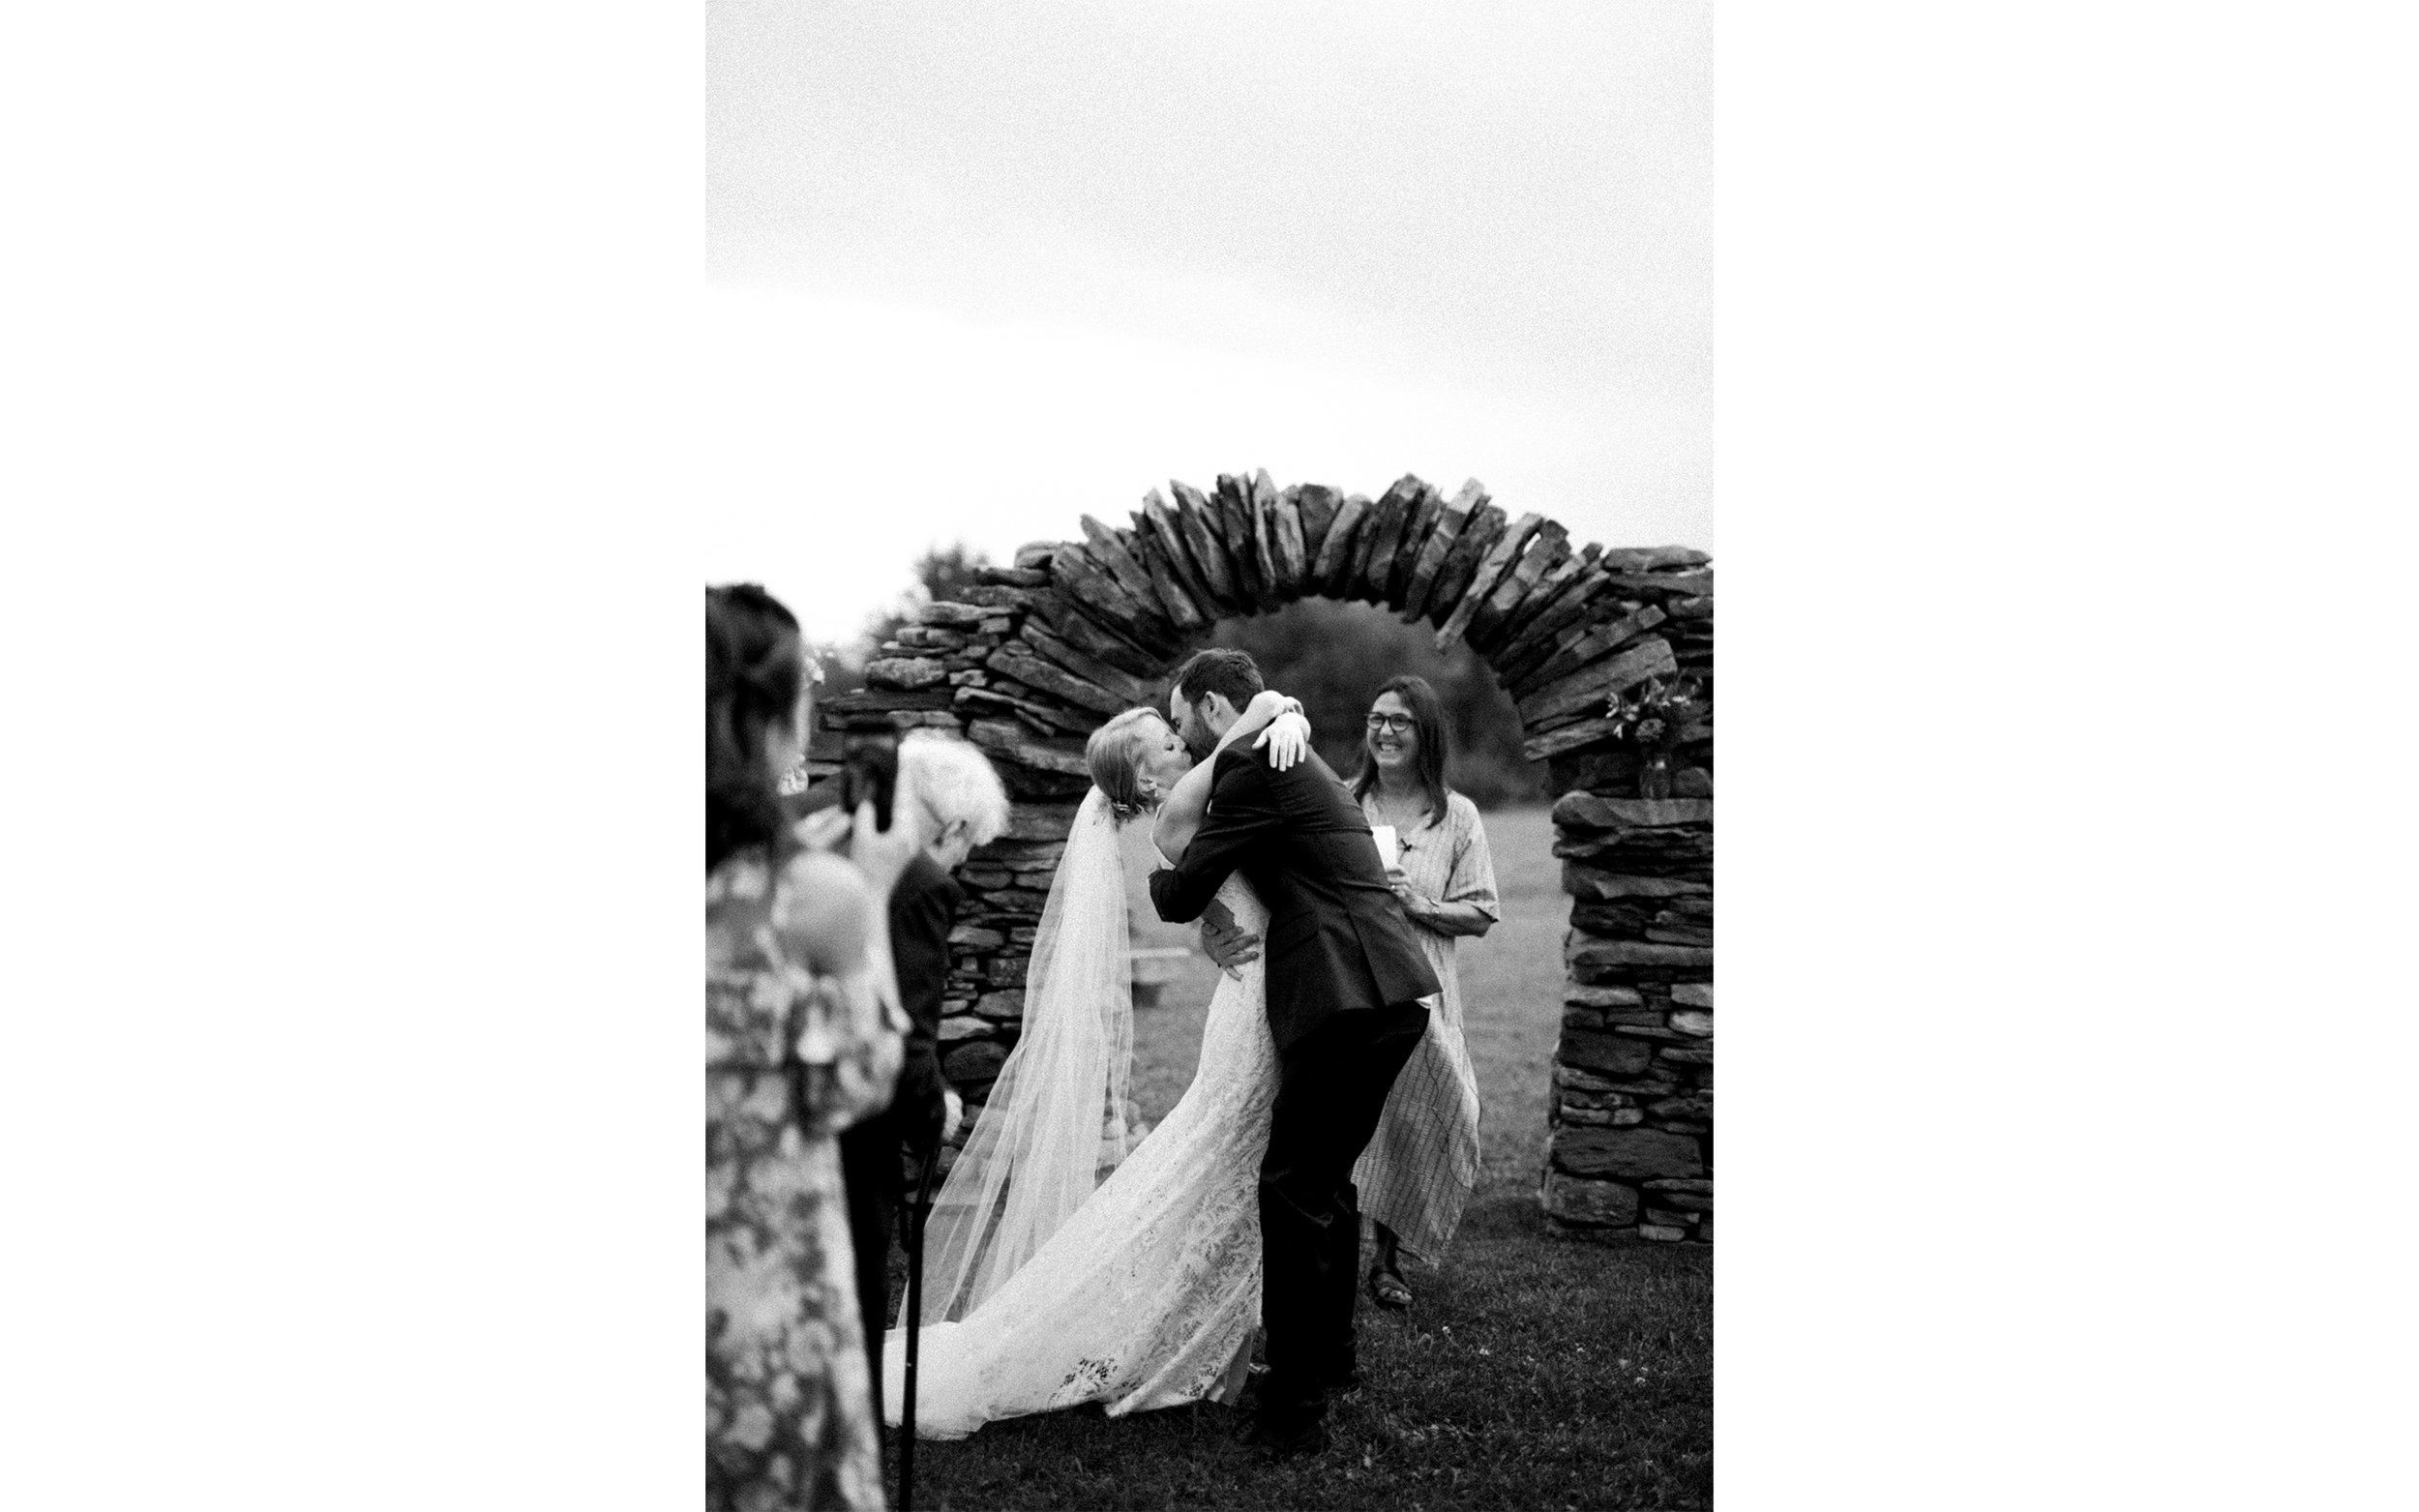 Stowe VT Farm Wedding Fine Art Wedding Photographer_Meg Haley Photographs_007.jpg